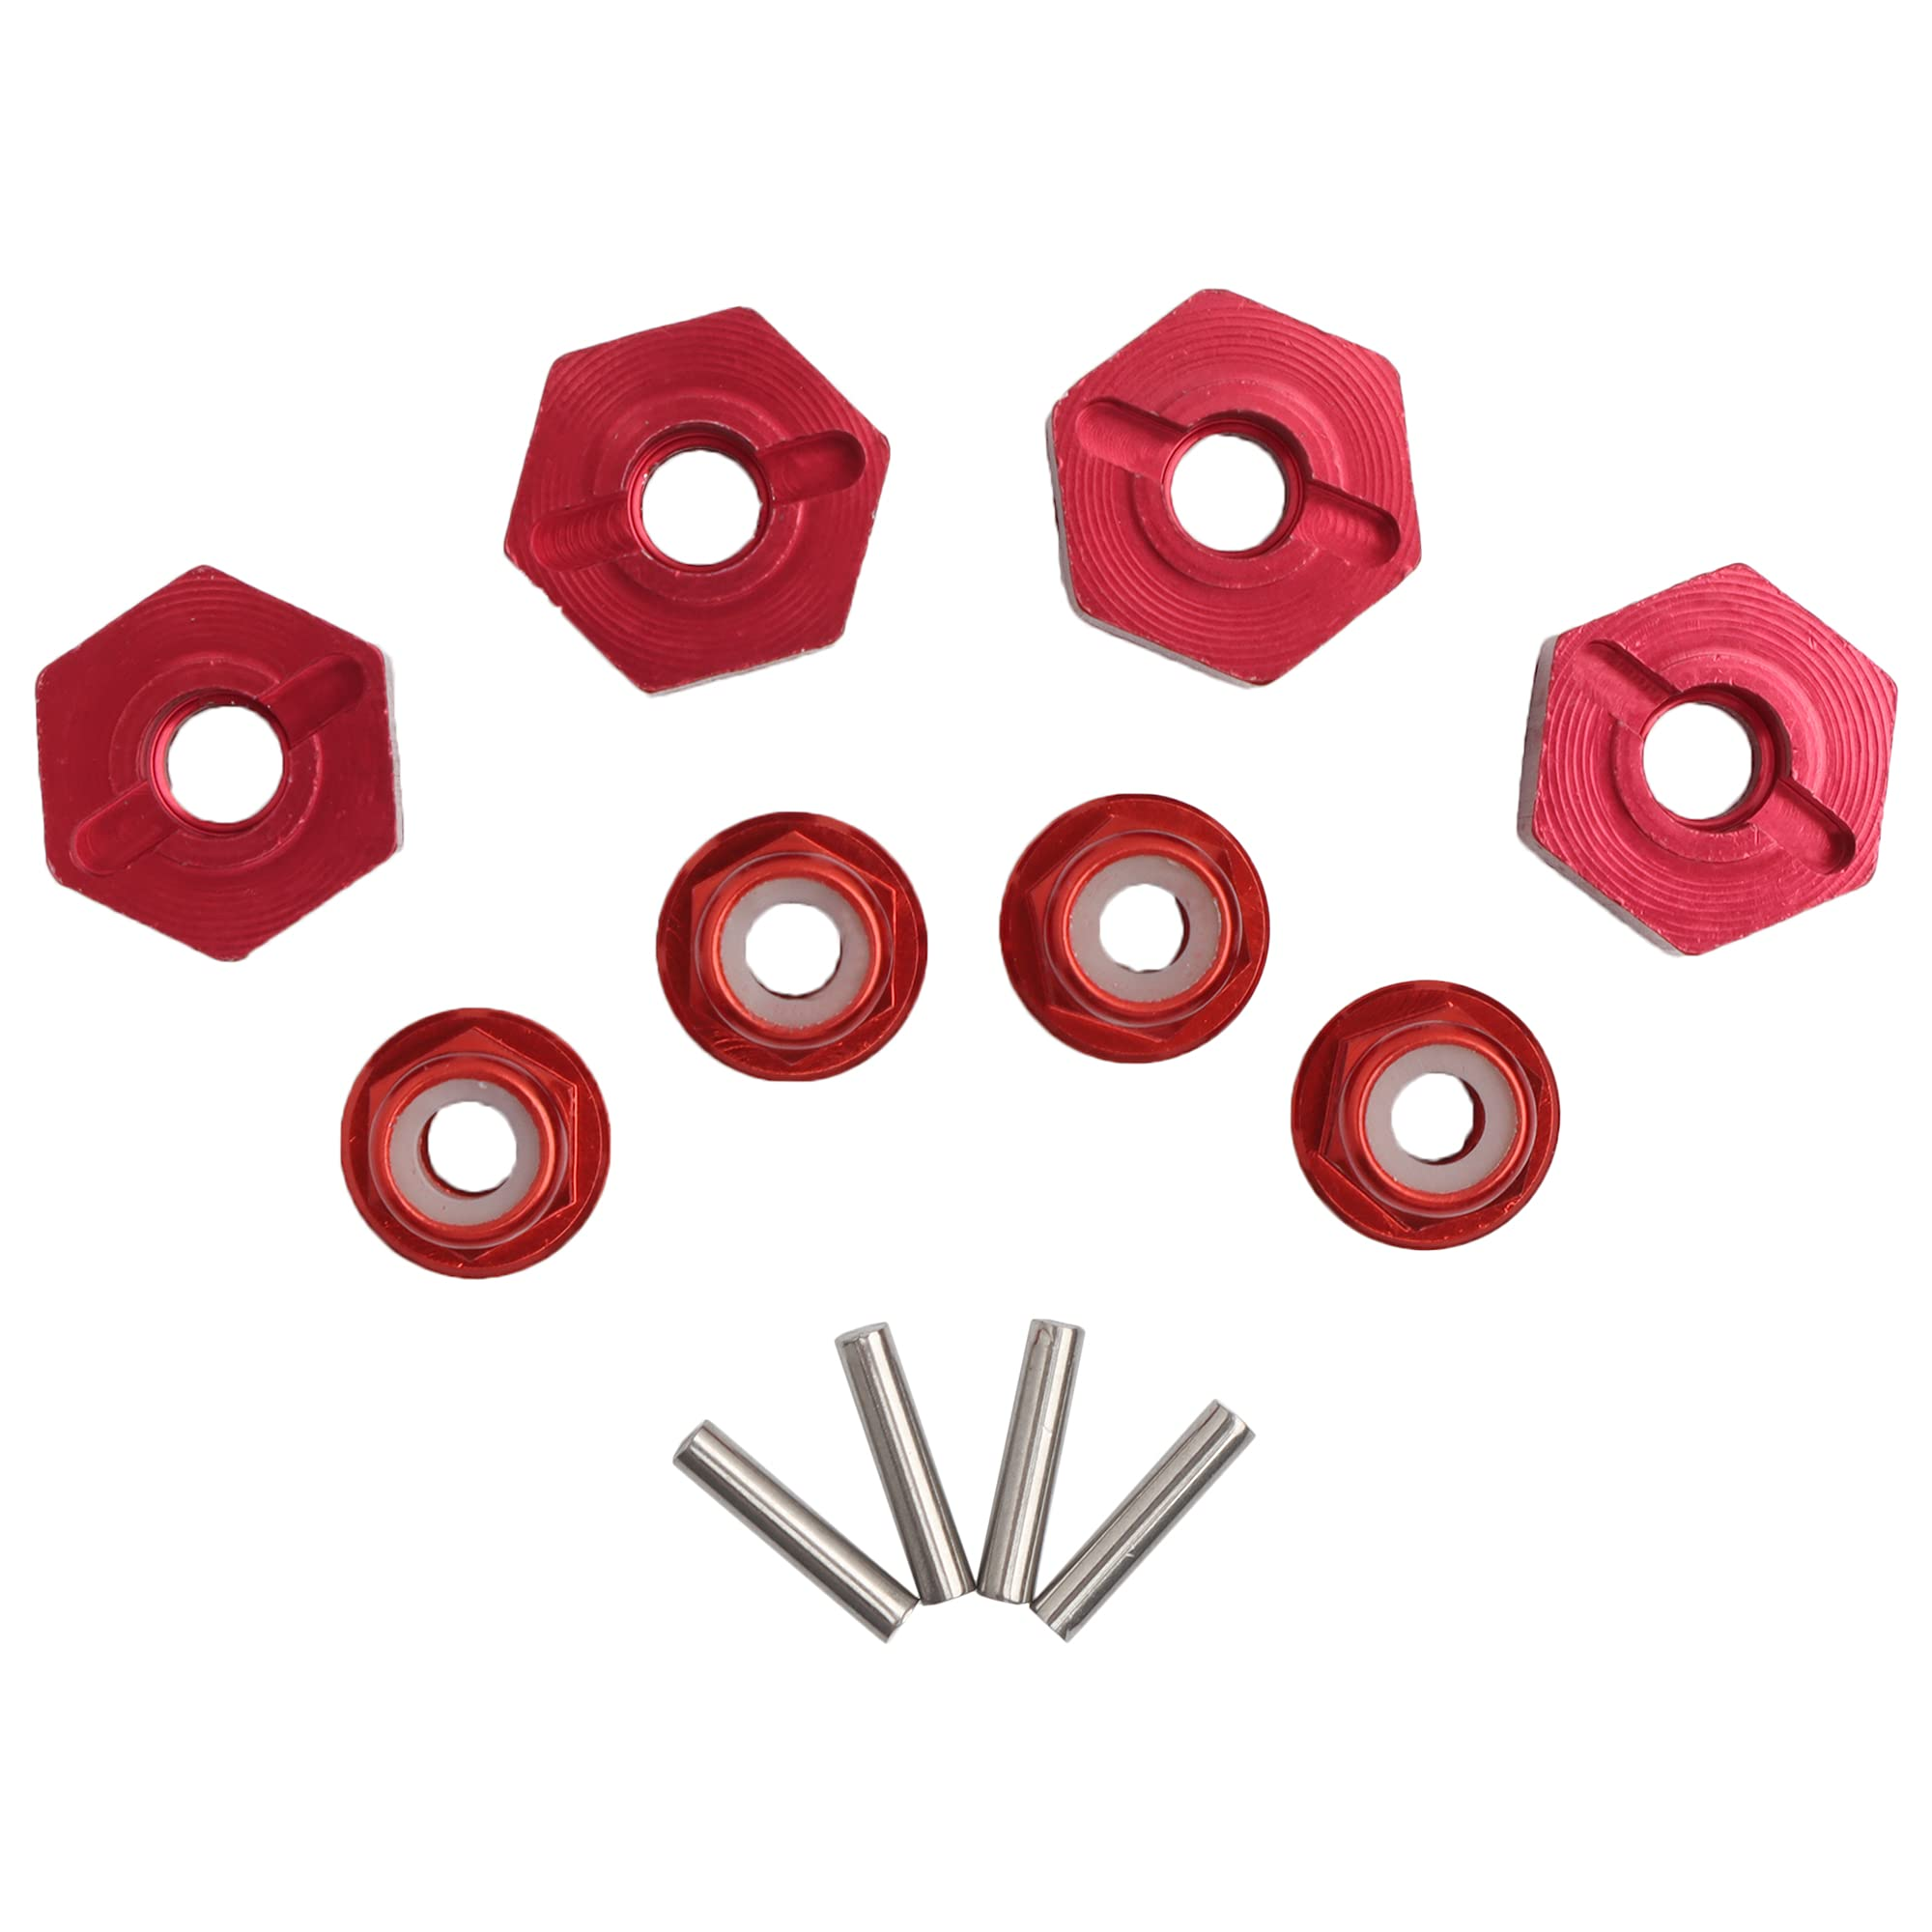 GDOOL 12mm Wheel Hex Hubs Drive Adapter 5mm Thick & Flange r